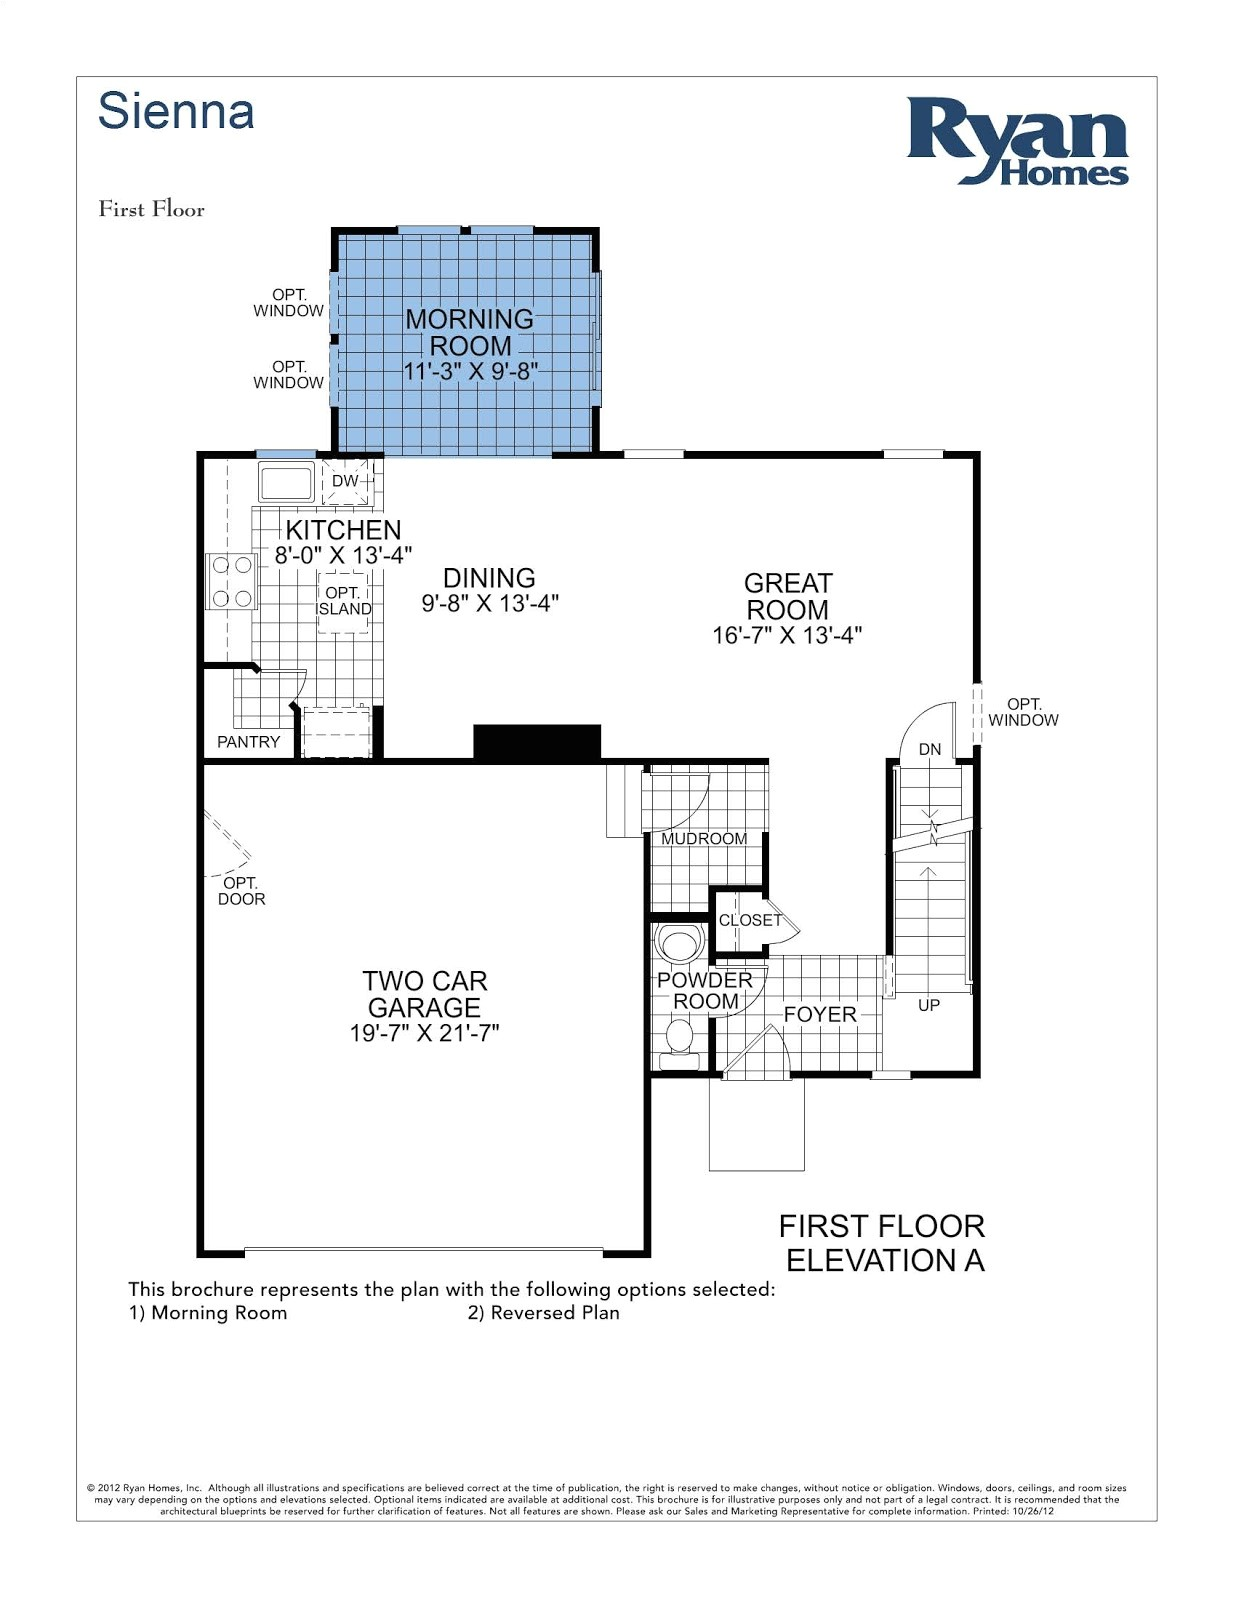 Ryan Homes Sienna Floor Plan Sienna Ryan Home Floor Plan House Design Plans